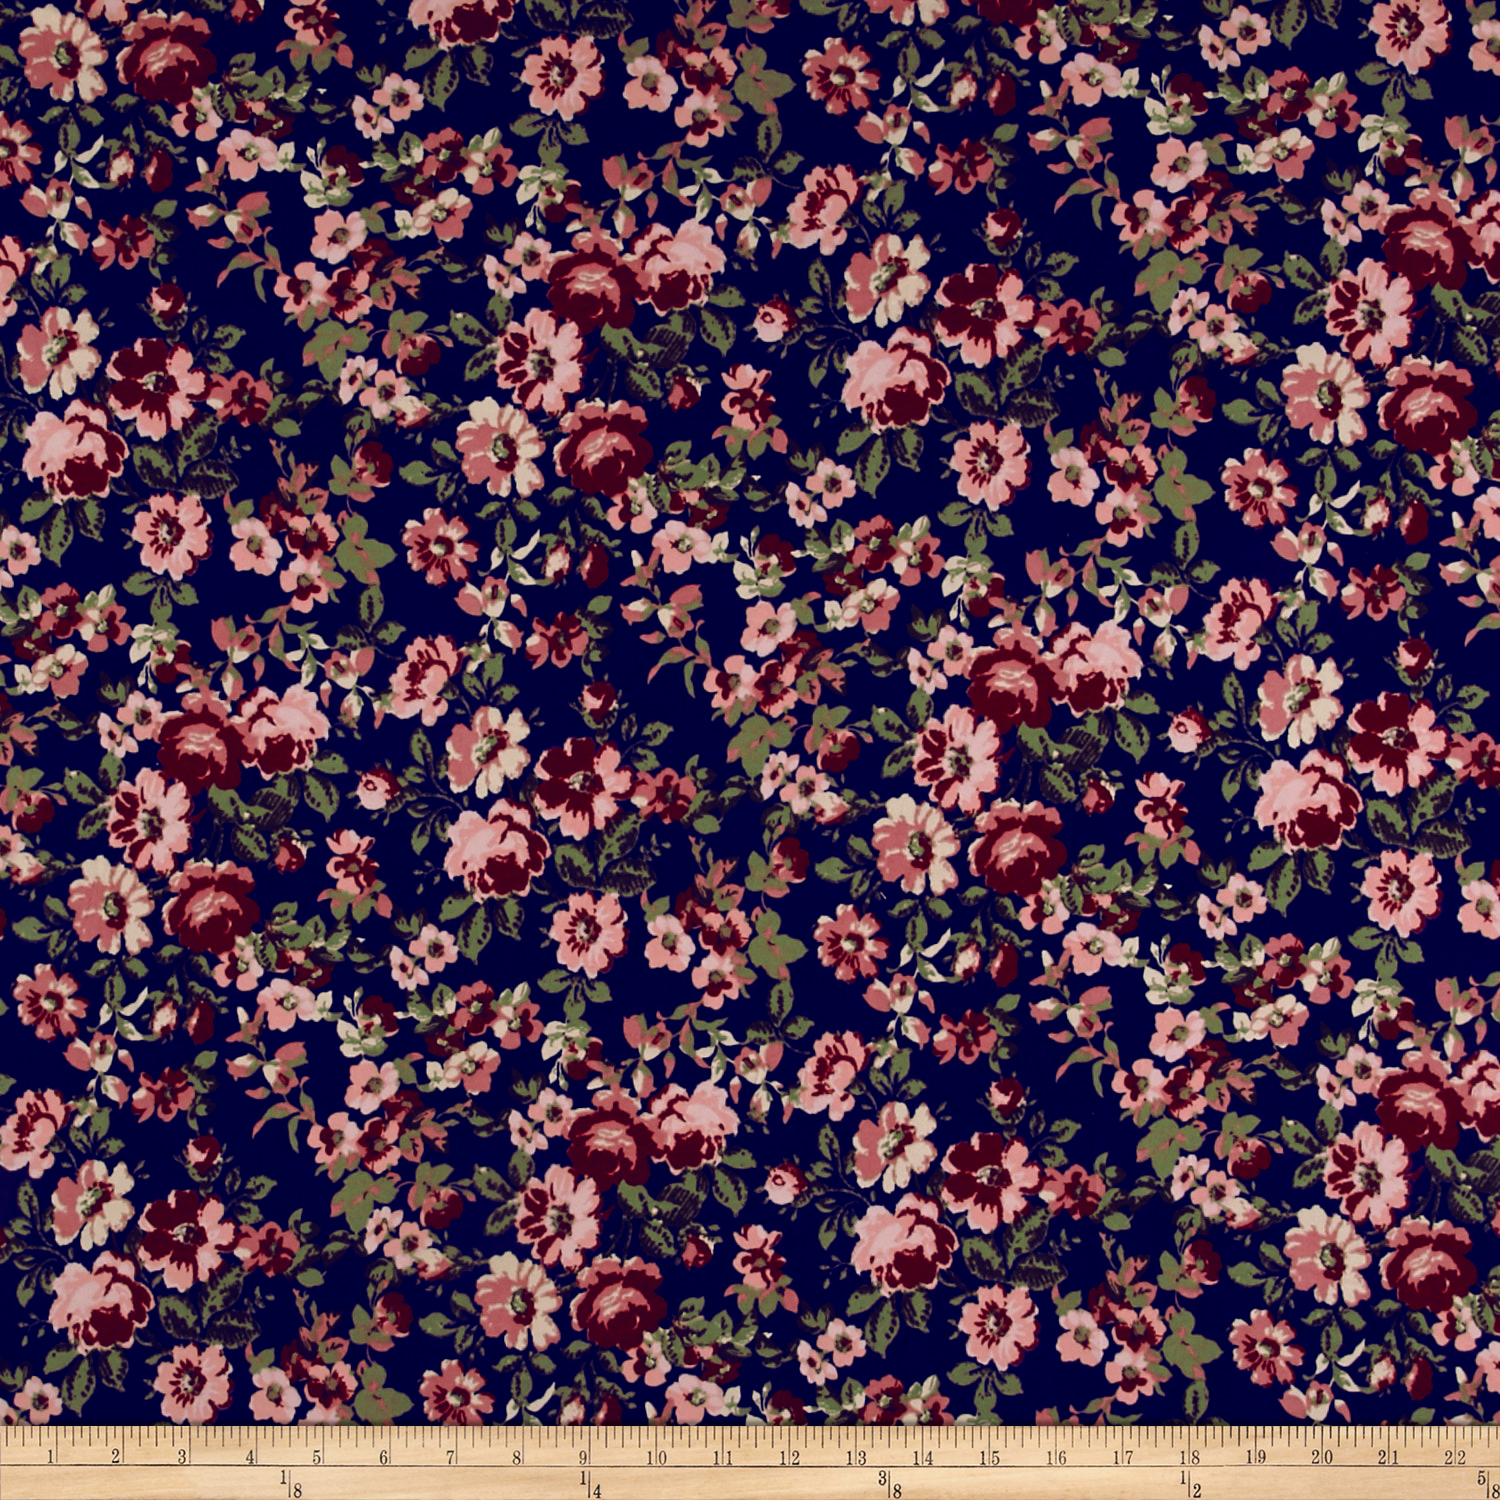 Double Brushed Poly Spandex Jersey Knit In Bloom Navy/Mauve Fabric 0538582